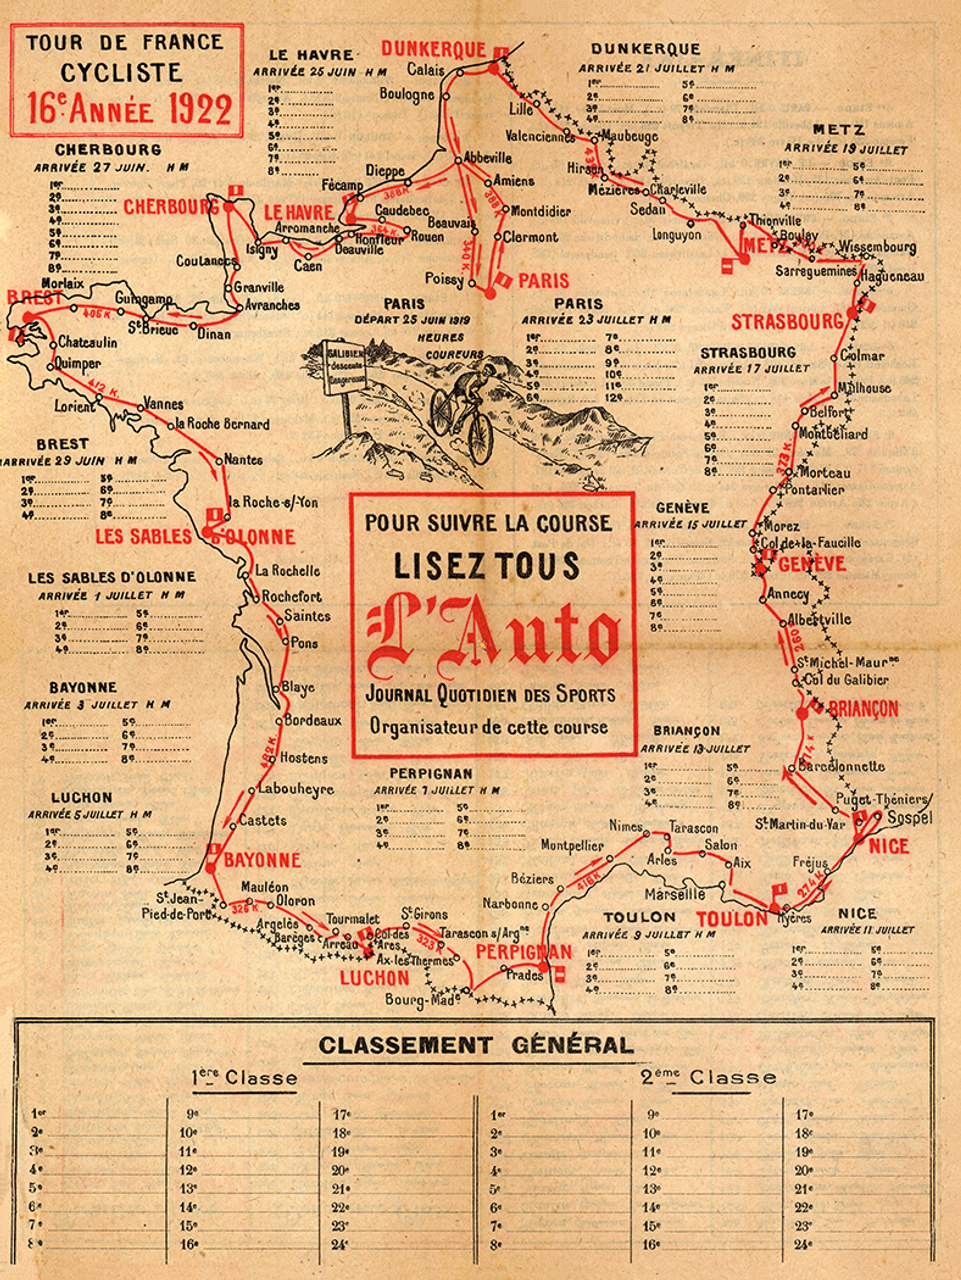 1922 Tour de France Vintage Map Poster designed so fans could follow the race